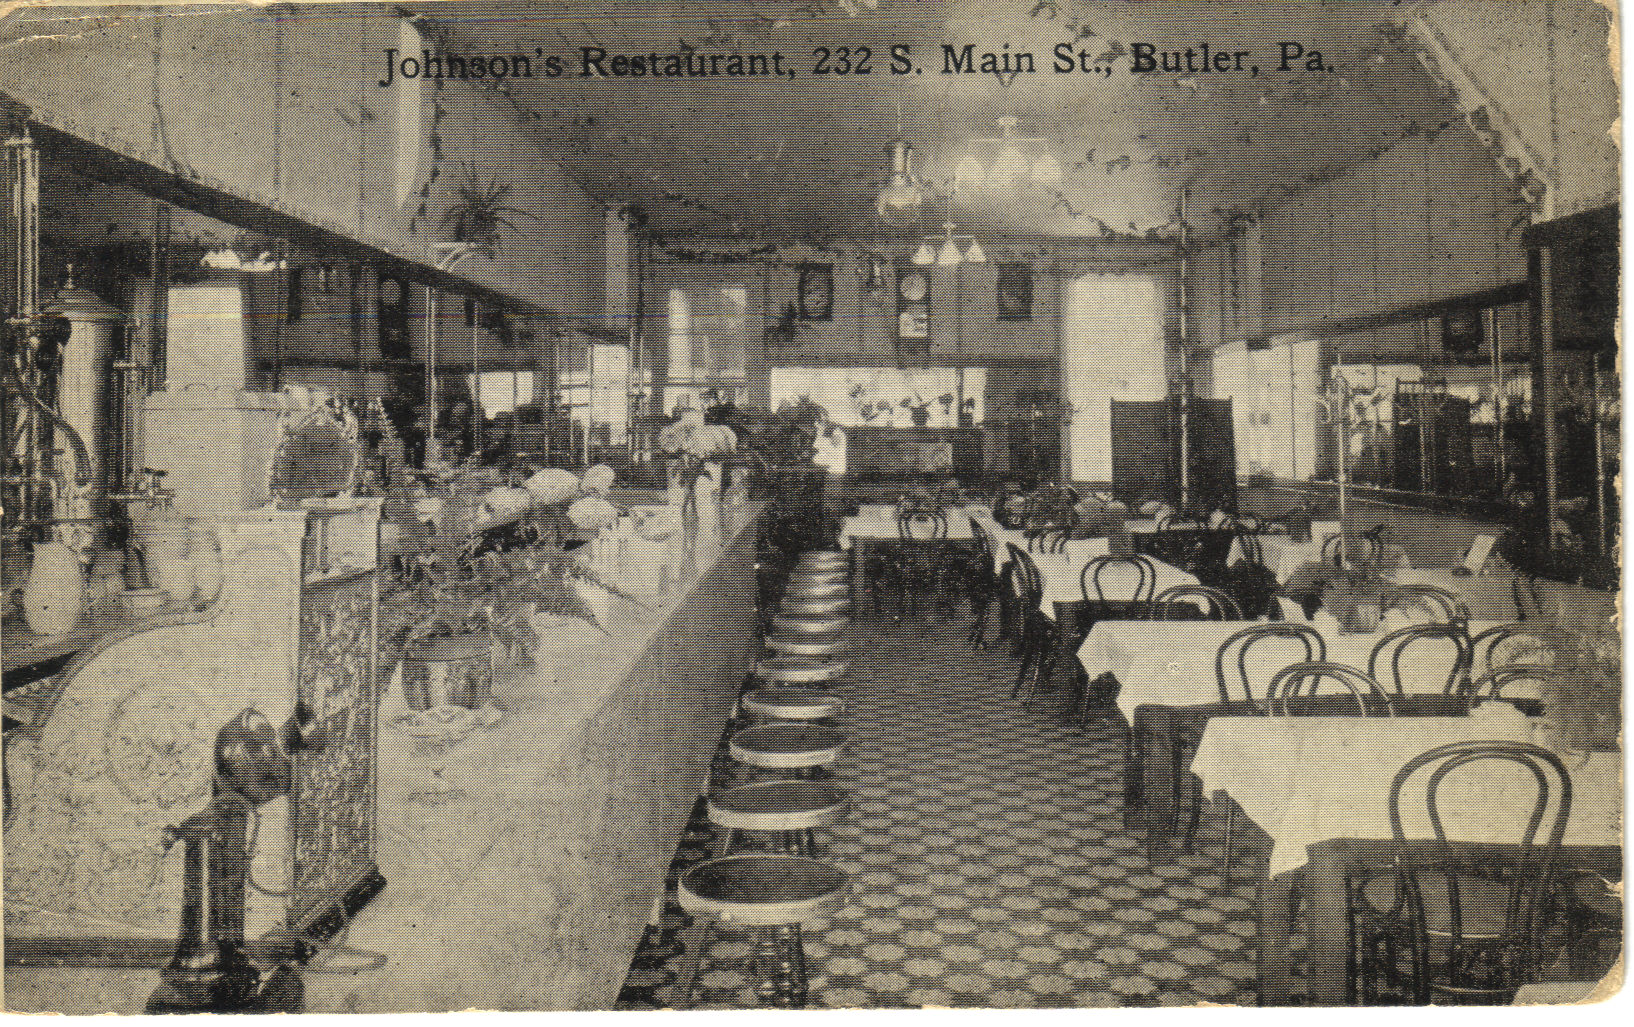 JohnsonsRestaurant-front.jpg